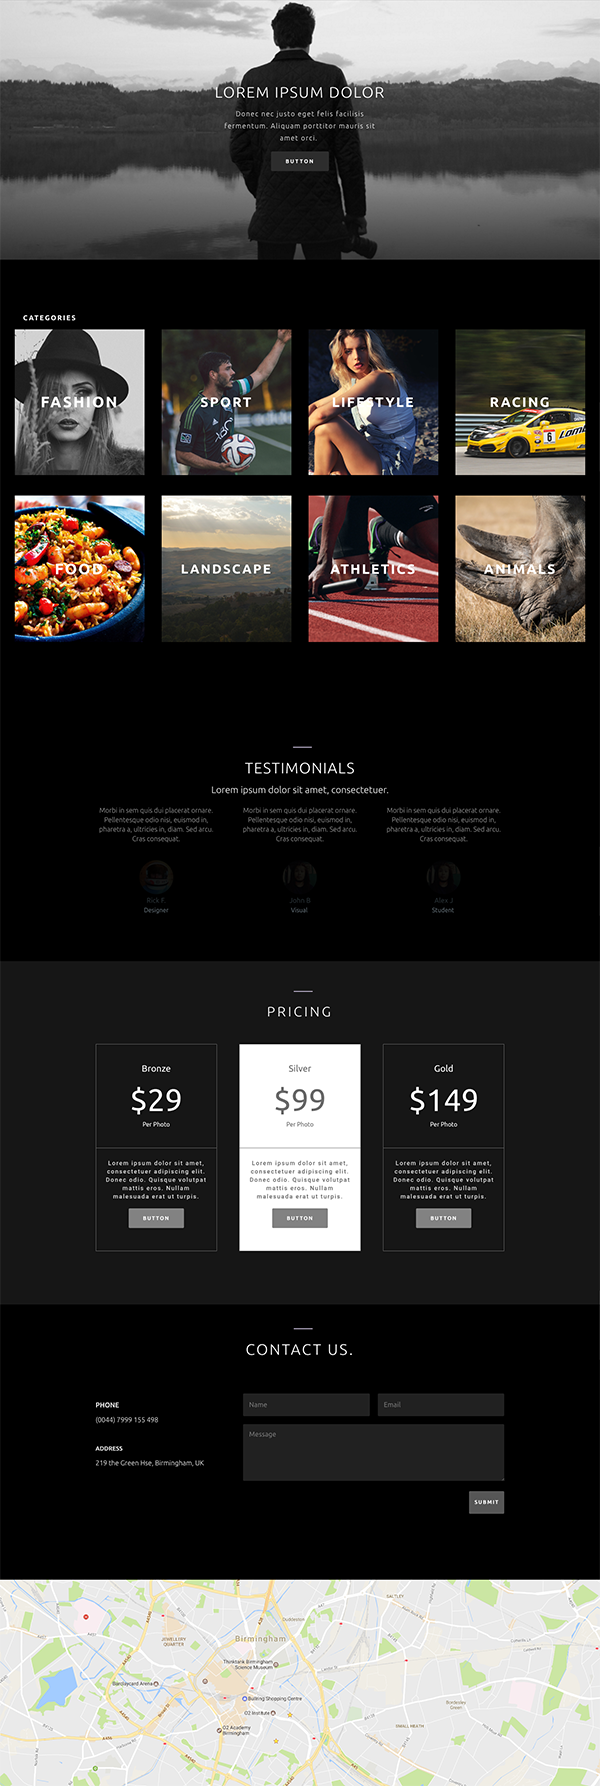 photography-homepage-layout